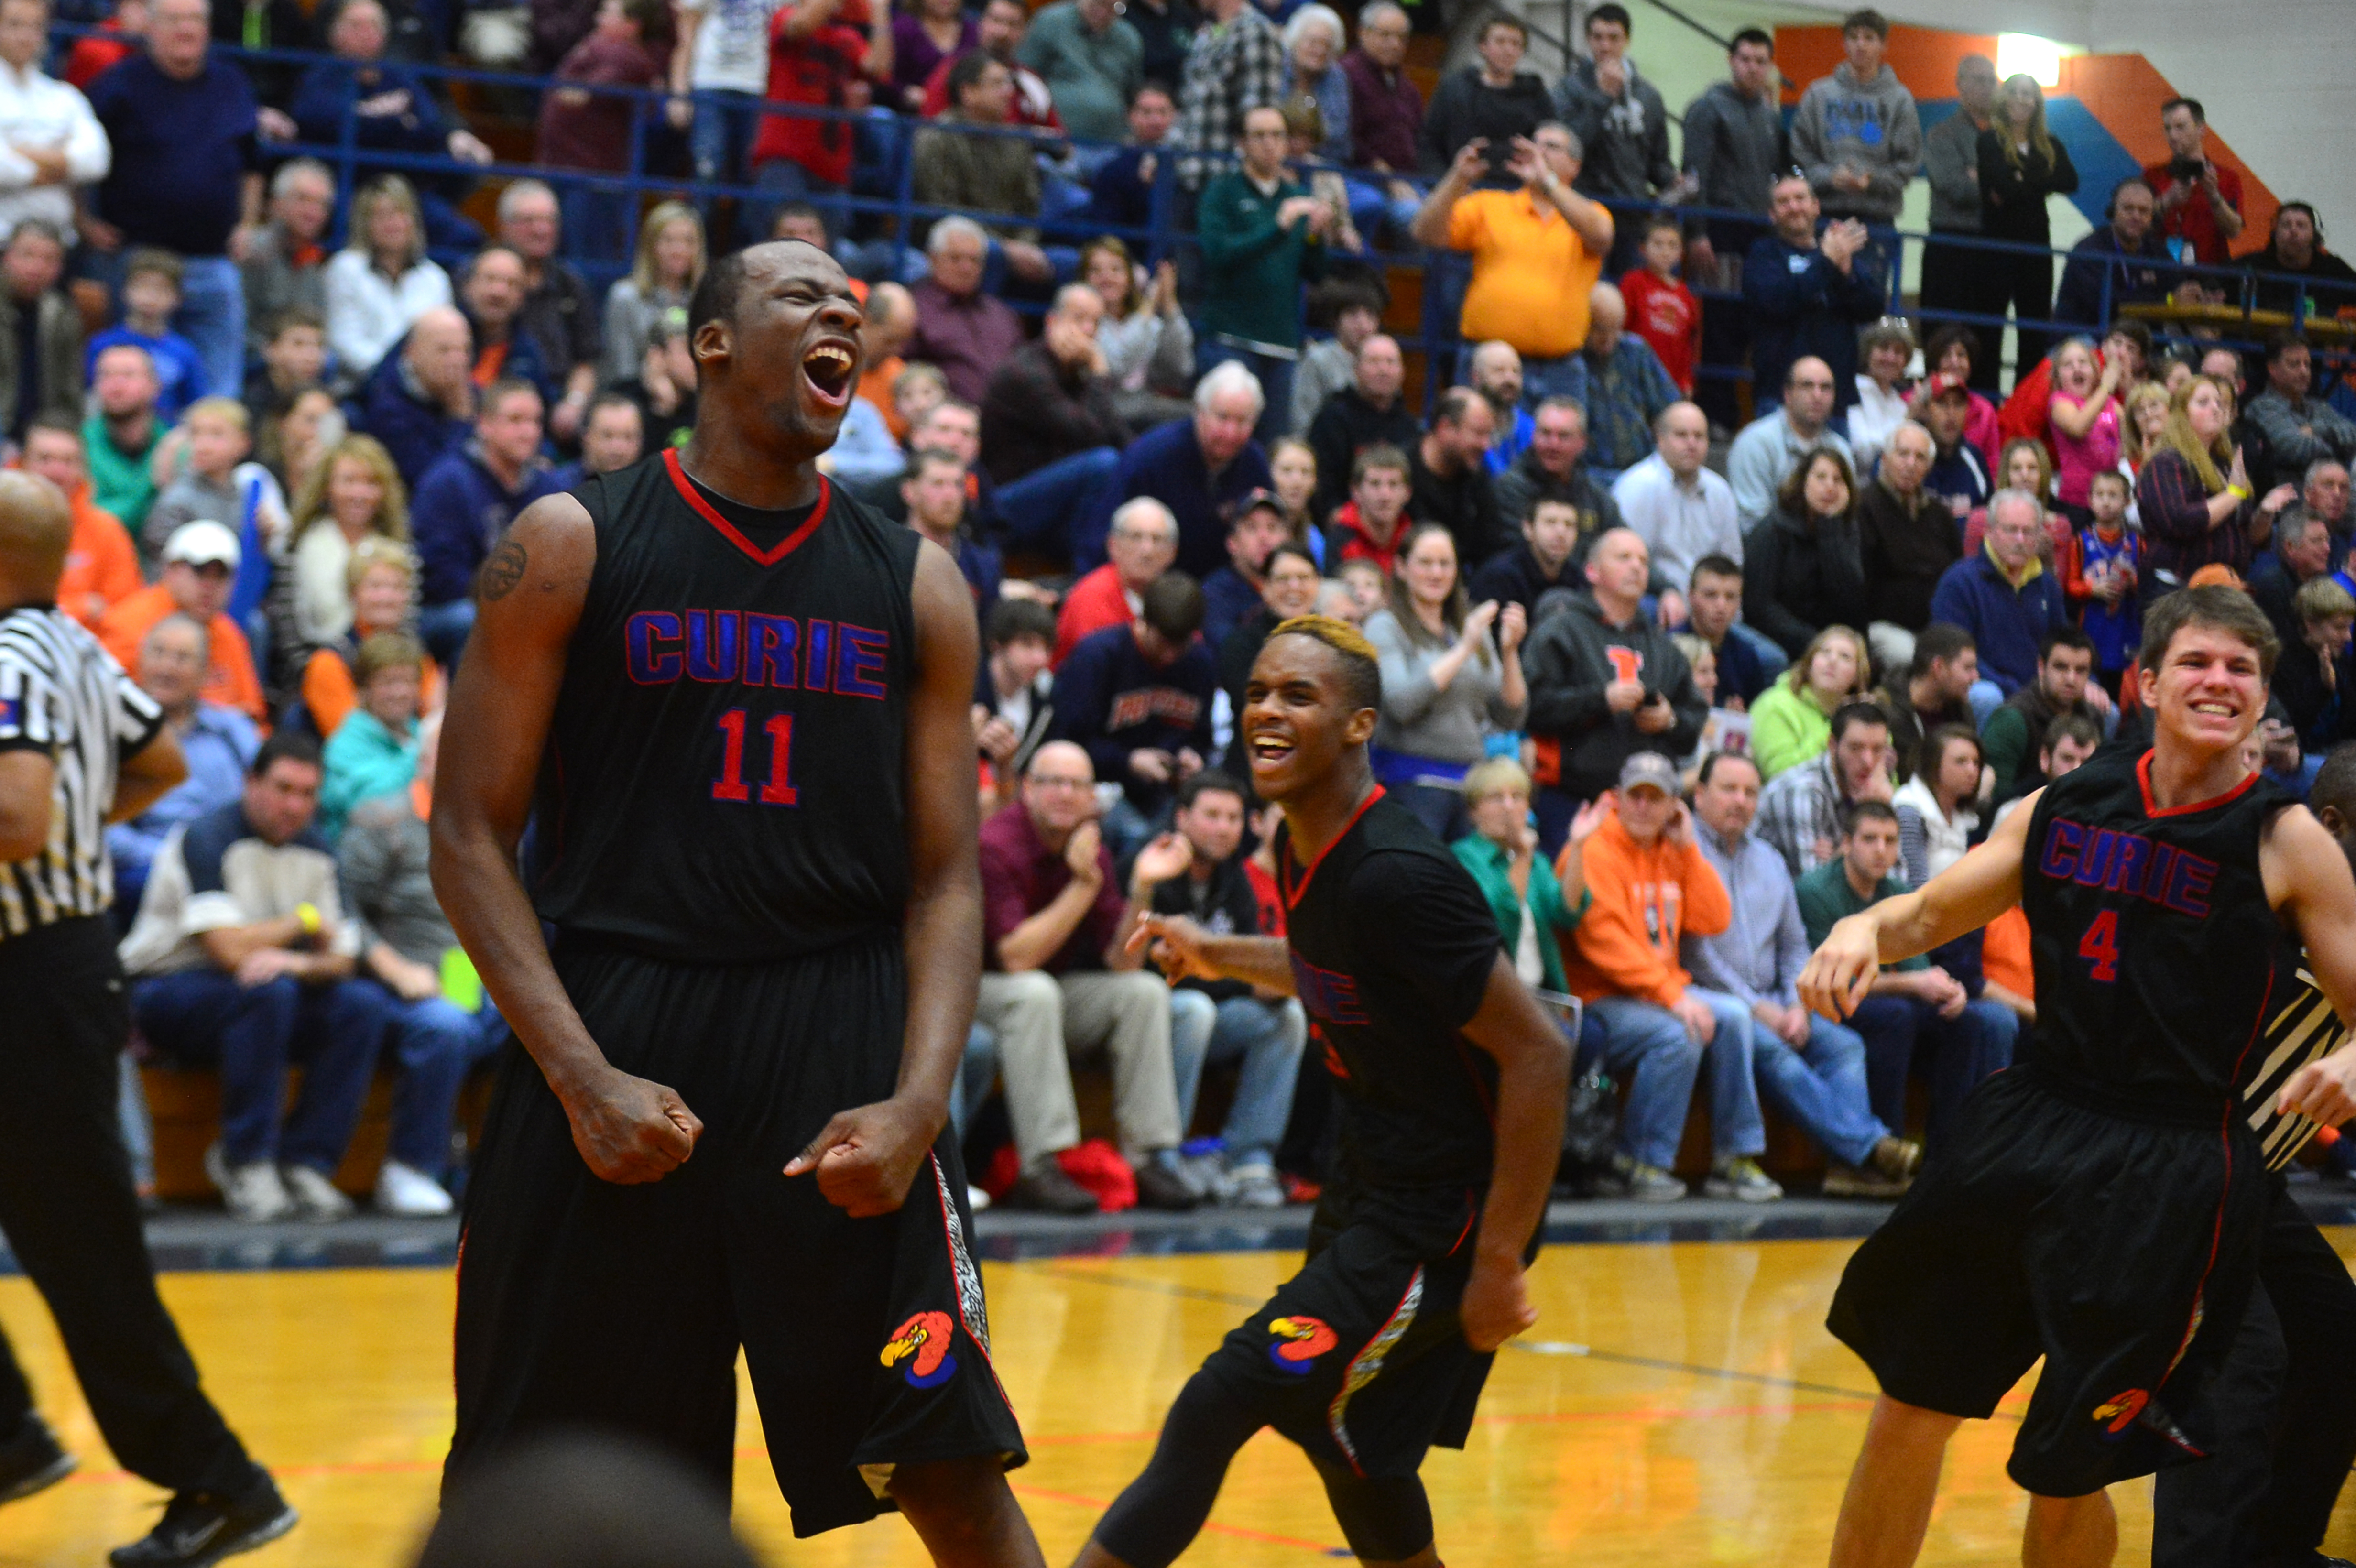 Curie's Cliff Alexander screams with teammates after defeating Simeon.